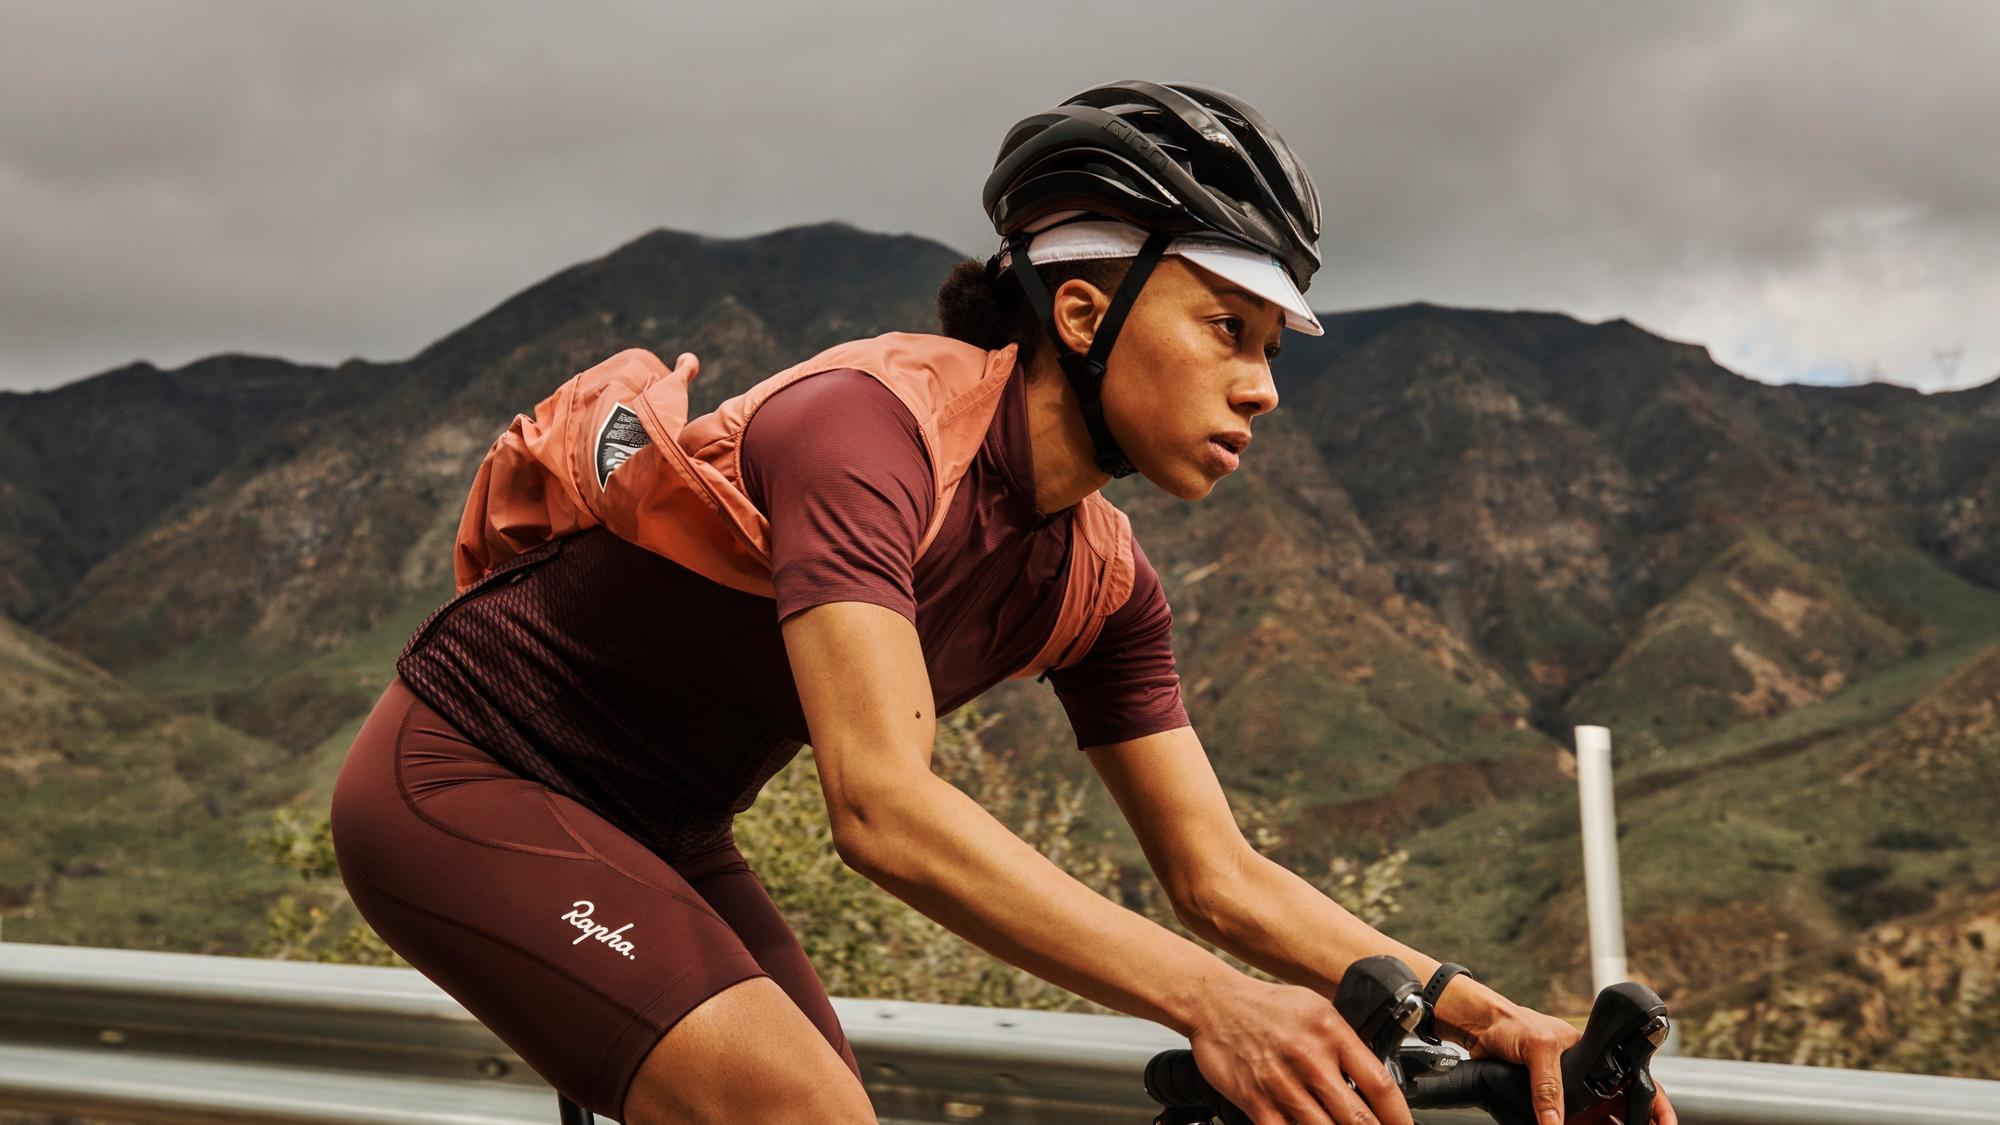 49268f5e235a4 The World s Finest Cycling Clothing and Accessories